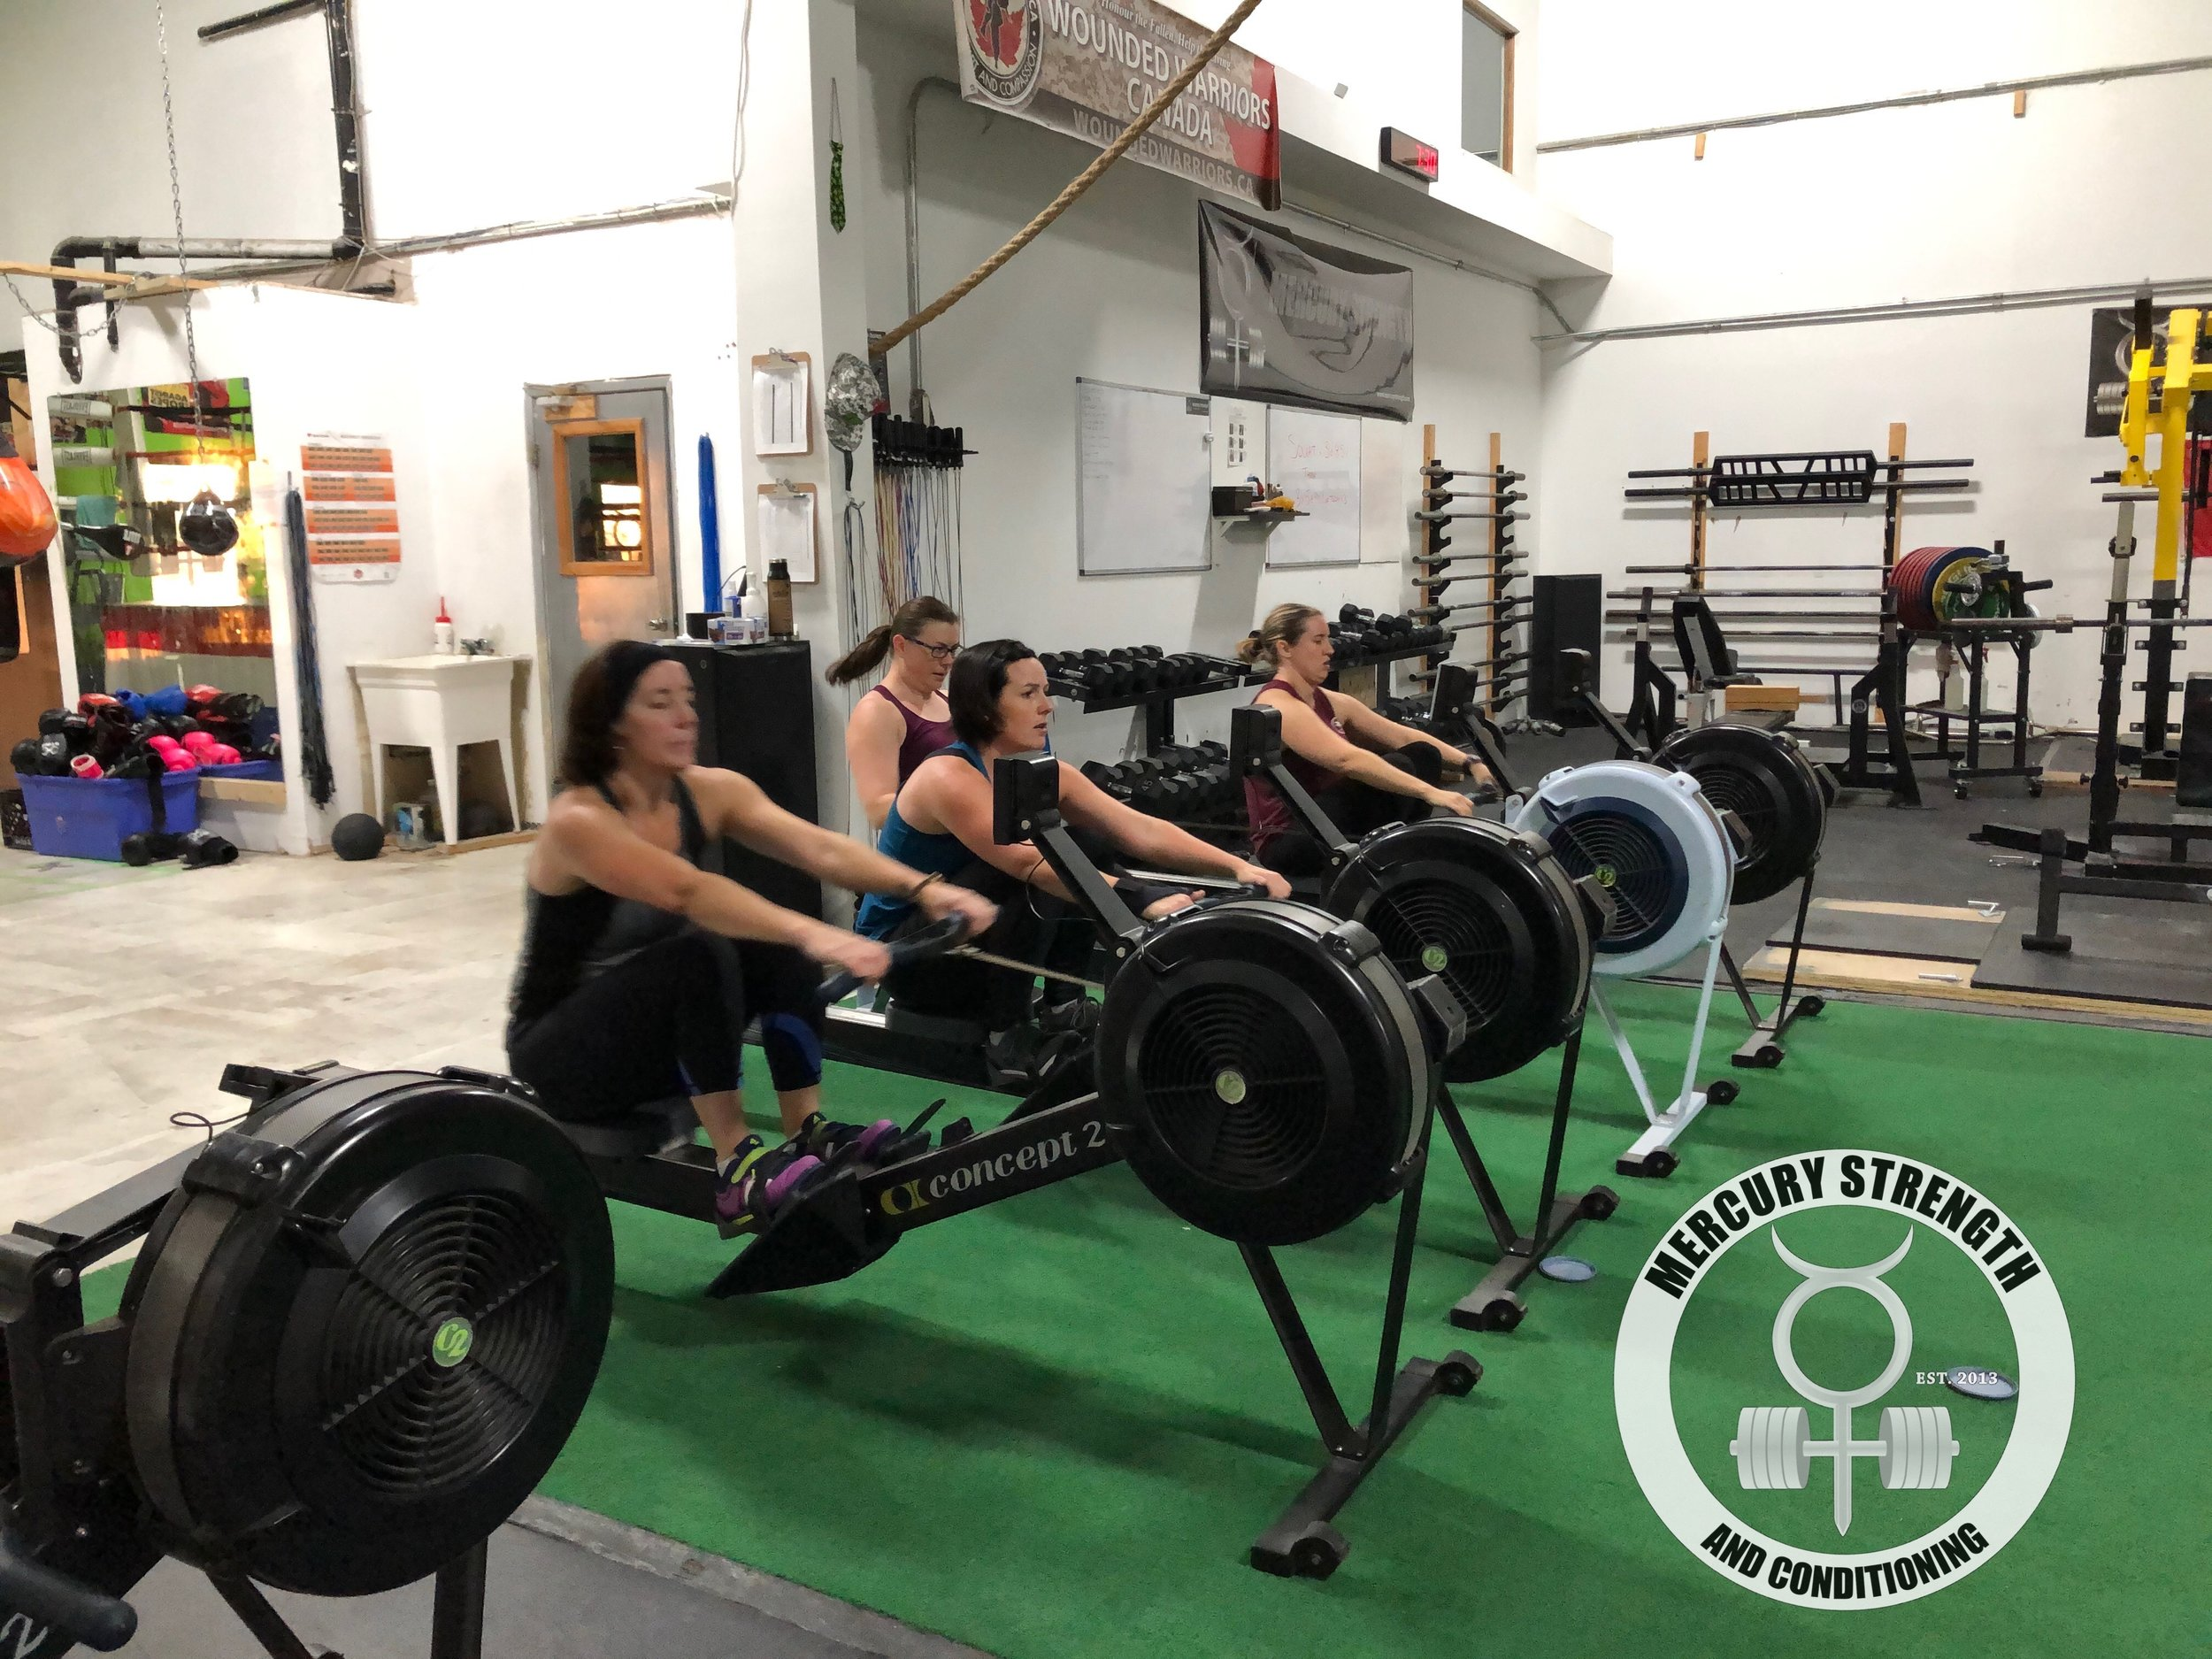 Gym-powerlifting-Olympic lifting-fitness-personal training-training-bootcamp-crossfit-kingston-gym-kingston gym-physique-body building-nutrition-kids-mercury-strength-conditioning-athlete-ontario powerlifting association-OPA-Canadian powerlifting federation-CPF-Row.JPG